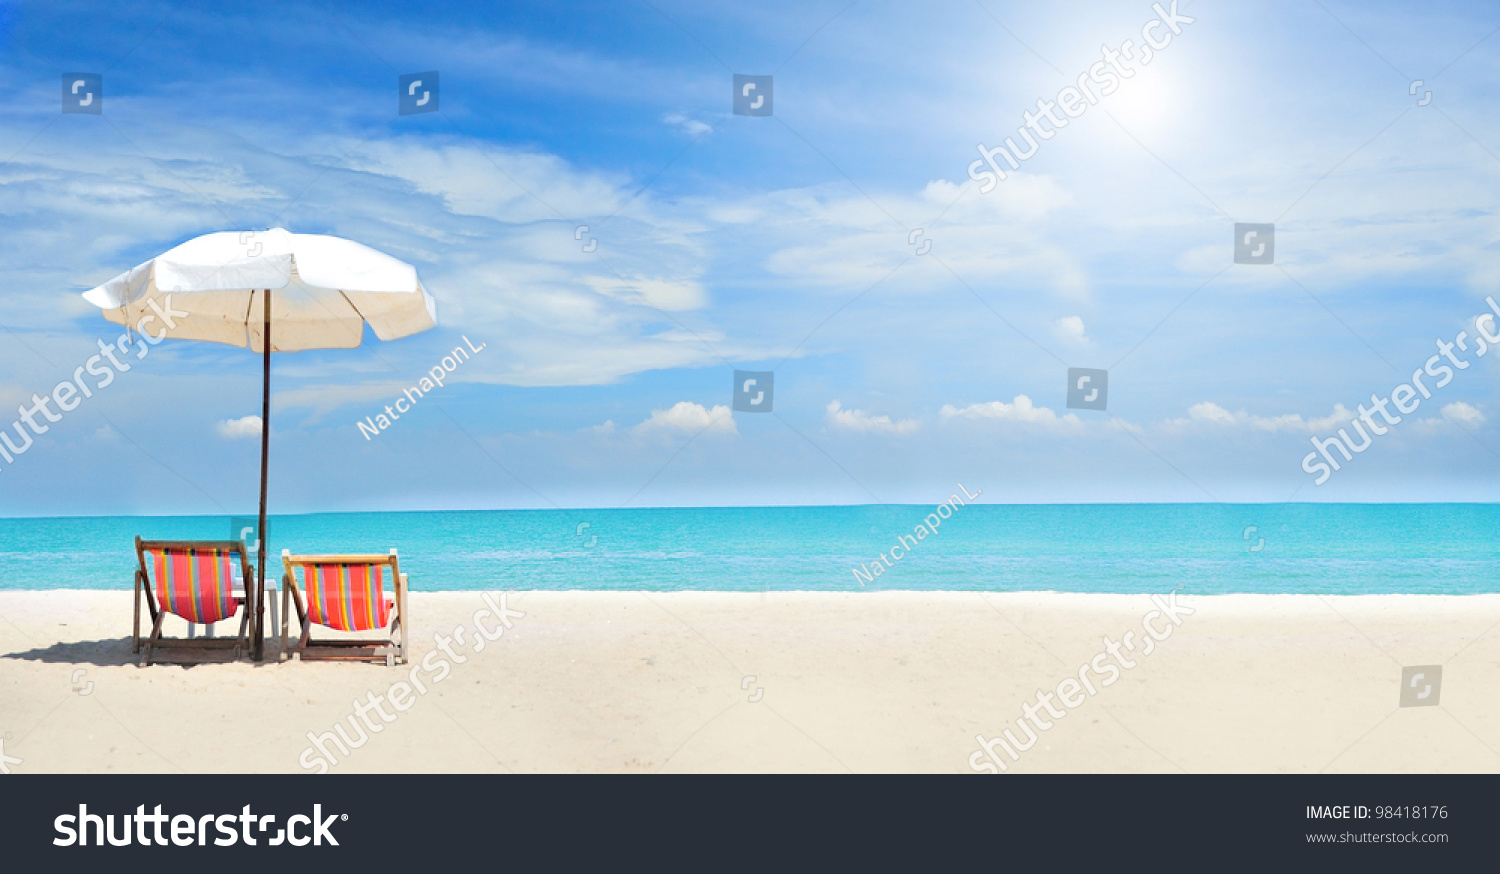 Beach with chairs - Beach Chairs On The White Sand Beach With Cloudy Blue Sky And Sun